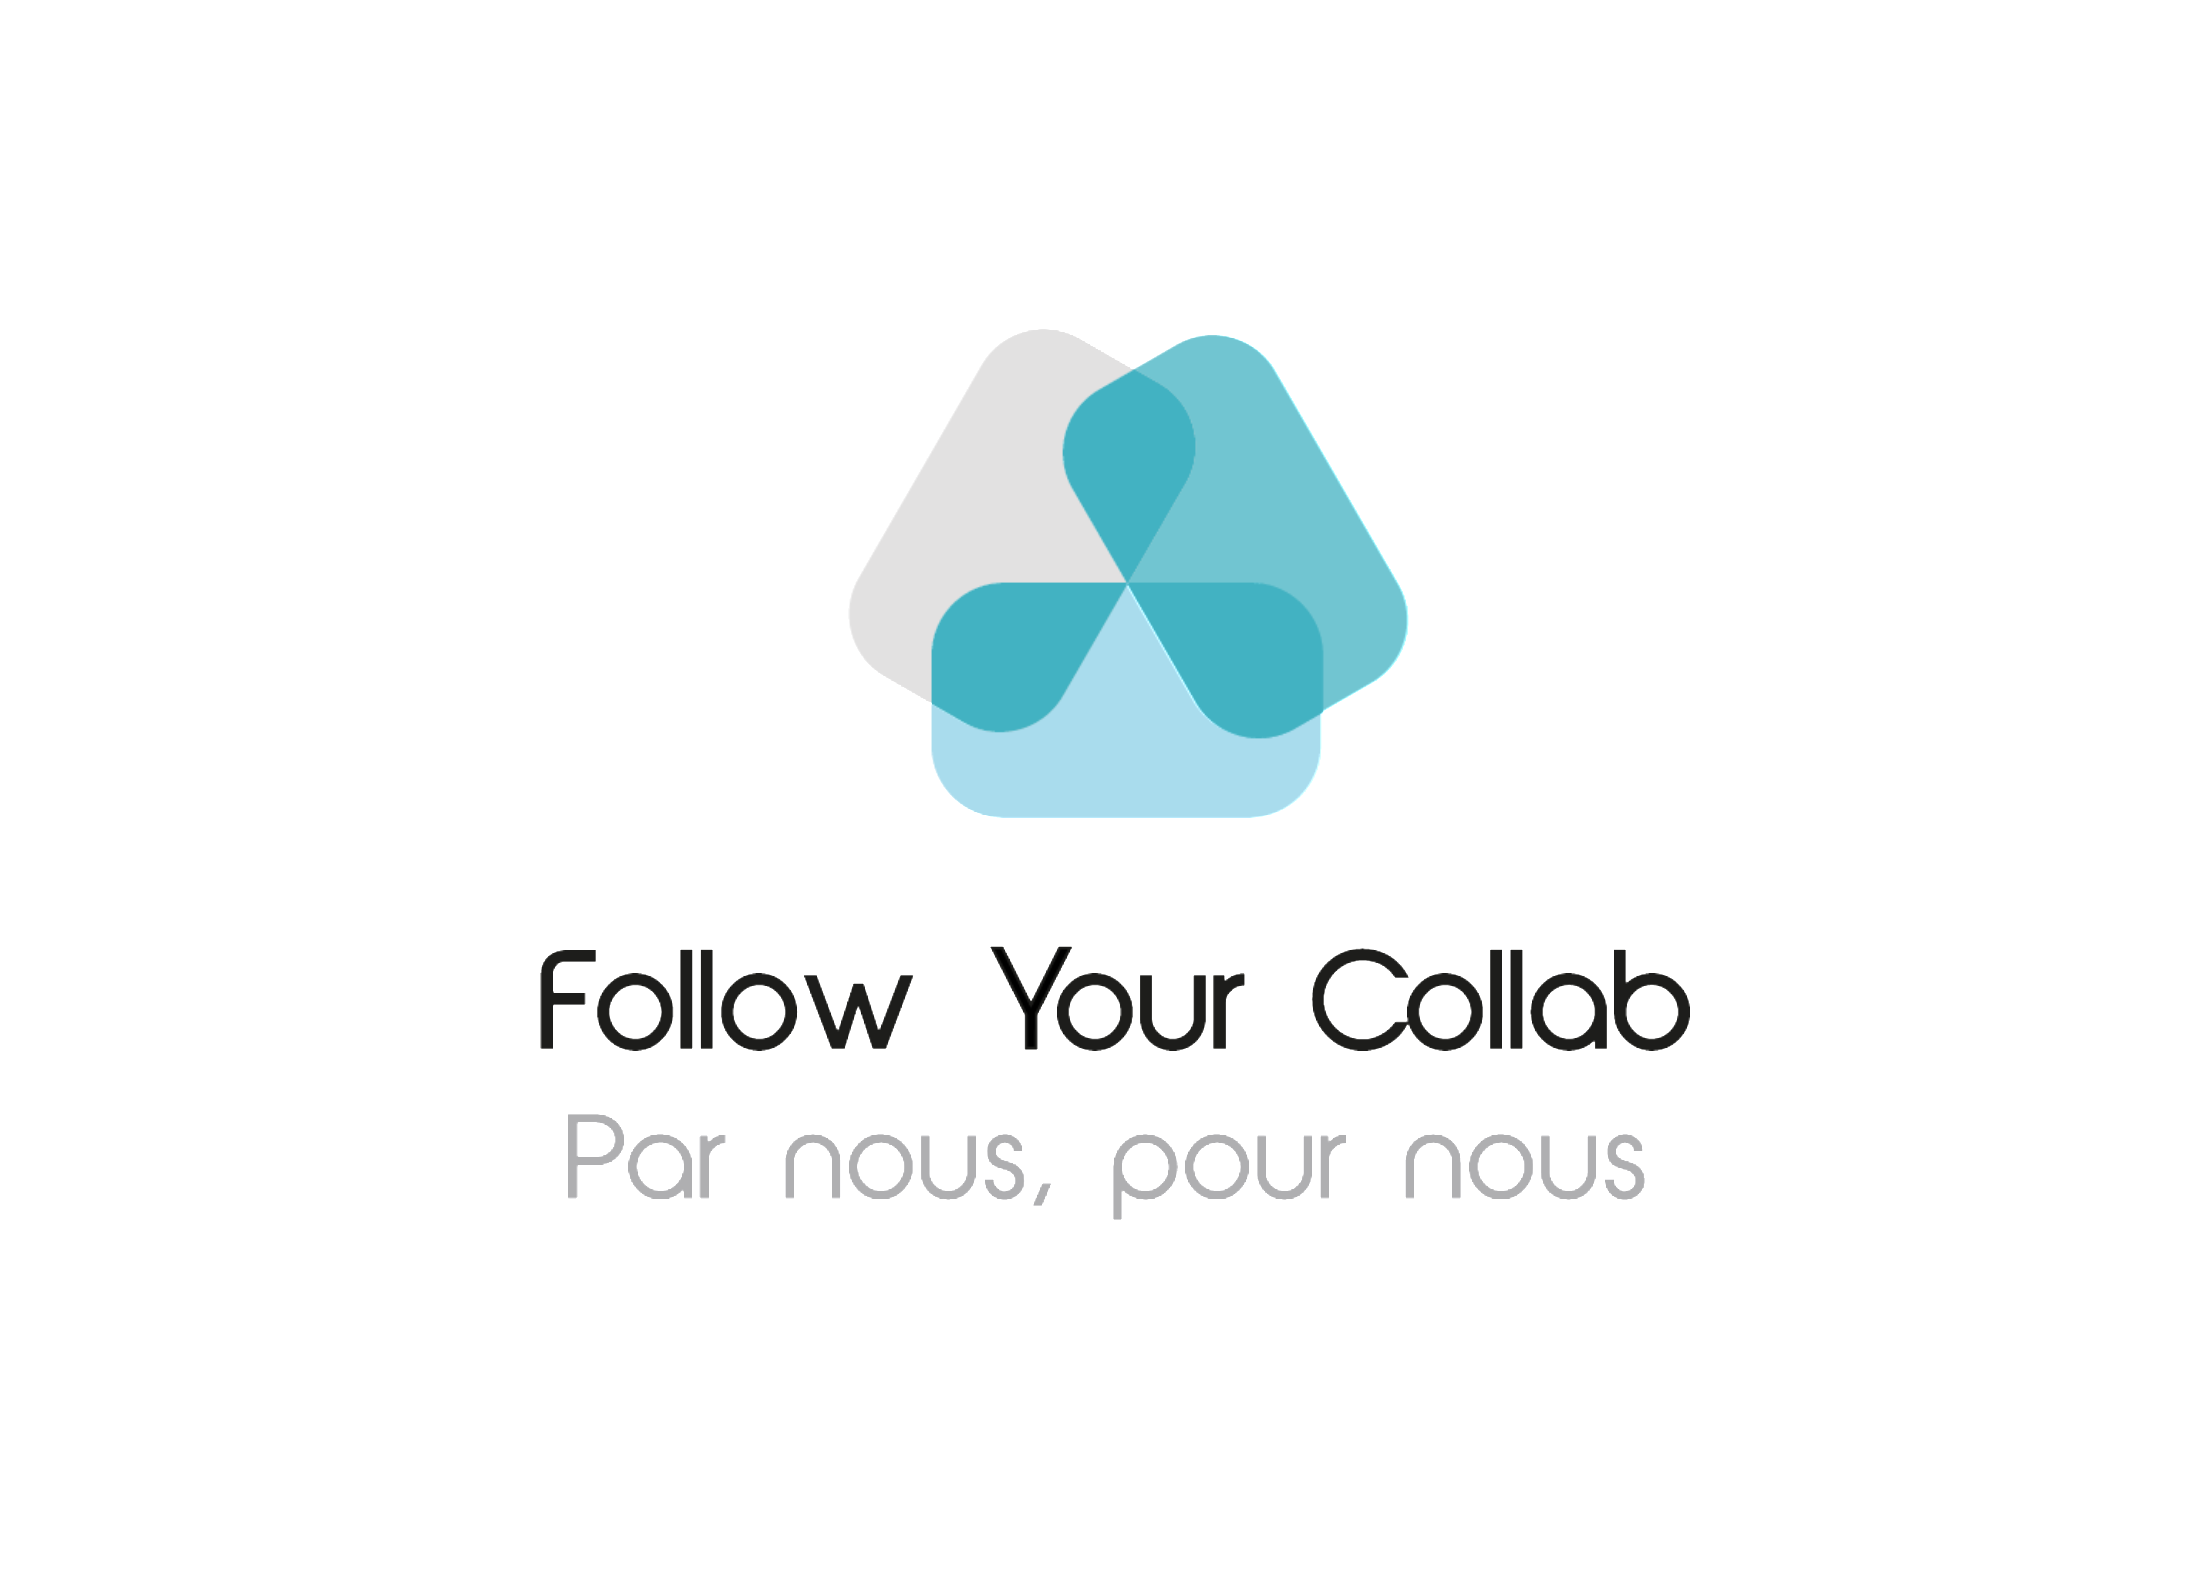 FYC_follow_your_collab